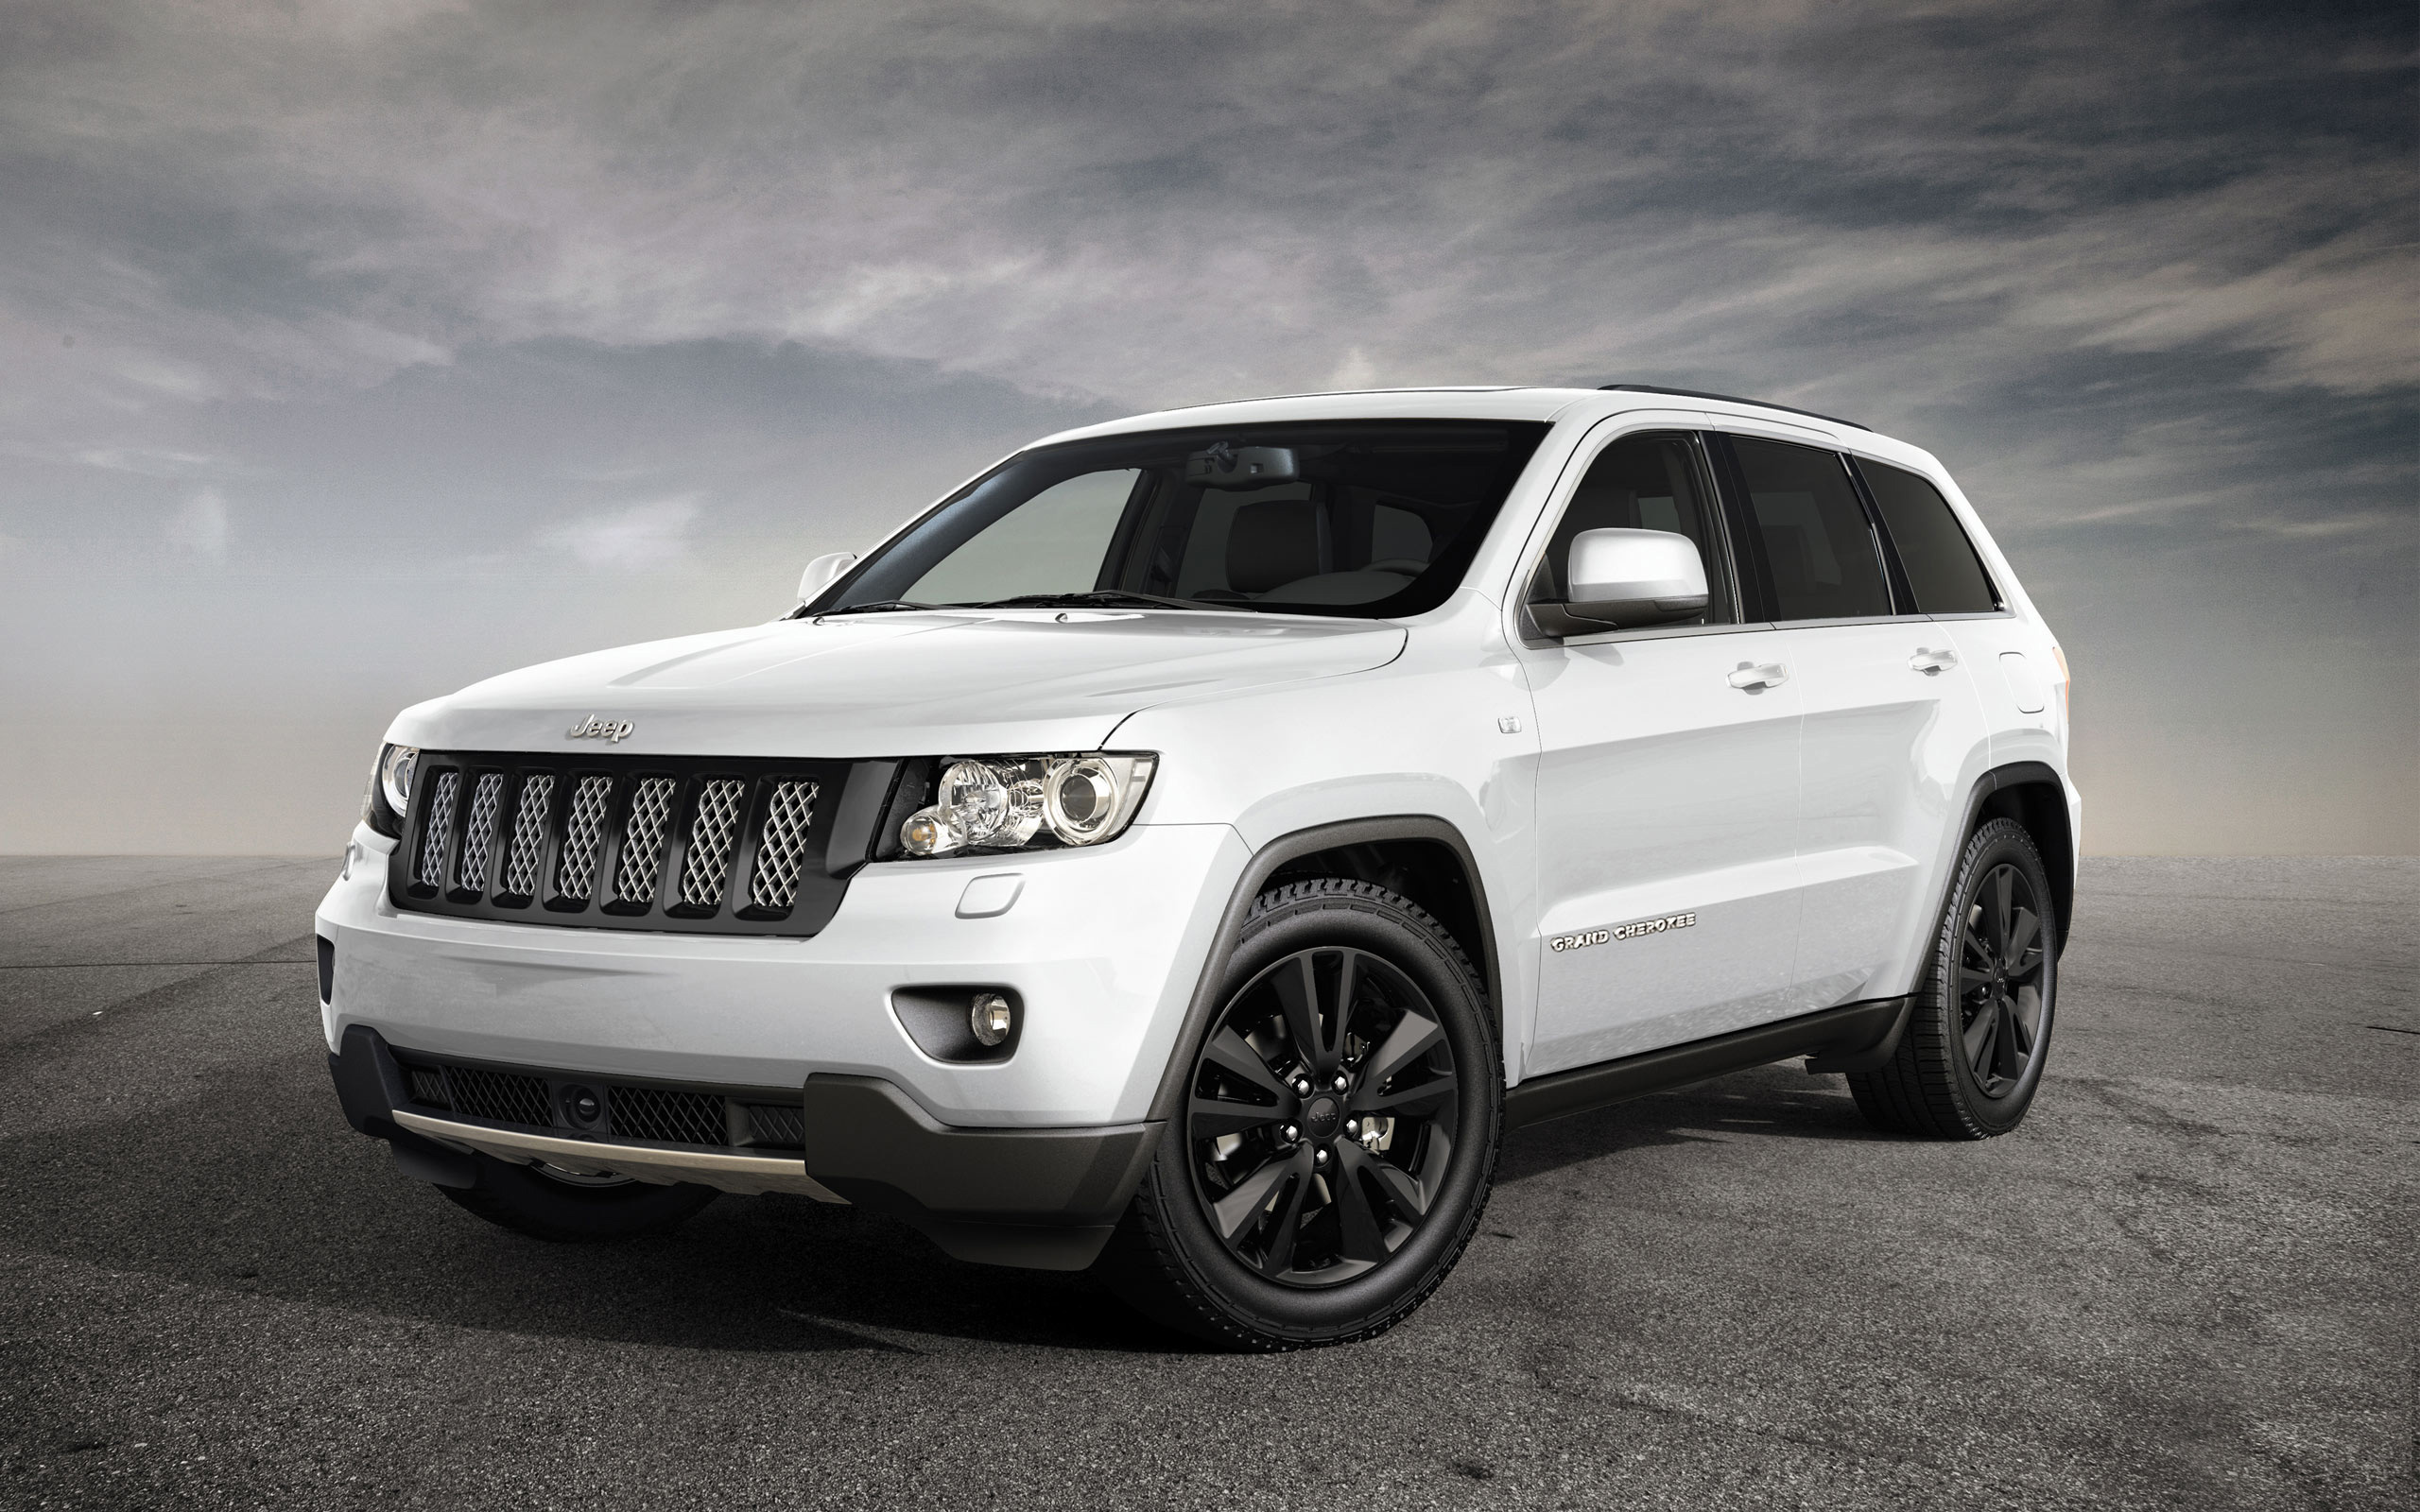 2012 jeep grand cherokee s limited wallpaper hd car wallpapers id 2840. Black Bedroom Furniture Sets. Home Design Ideas